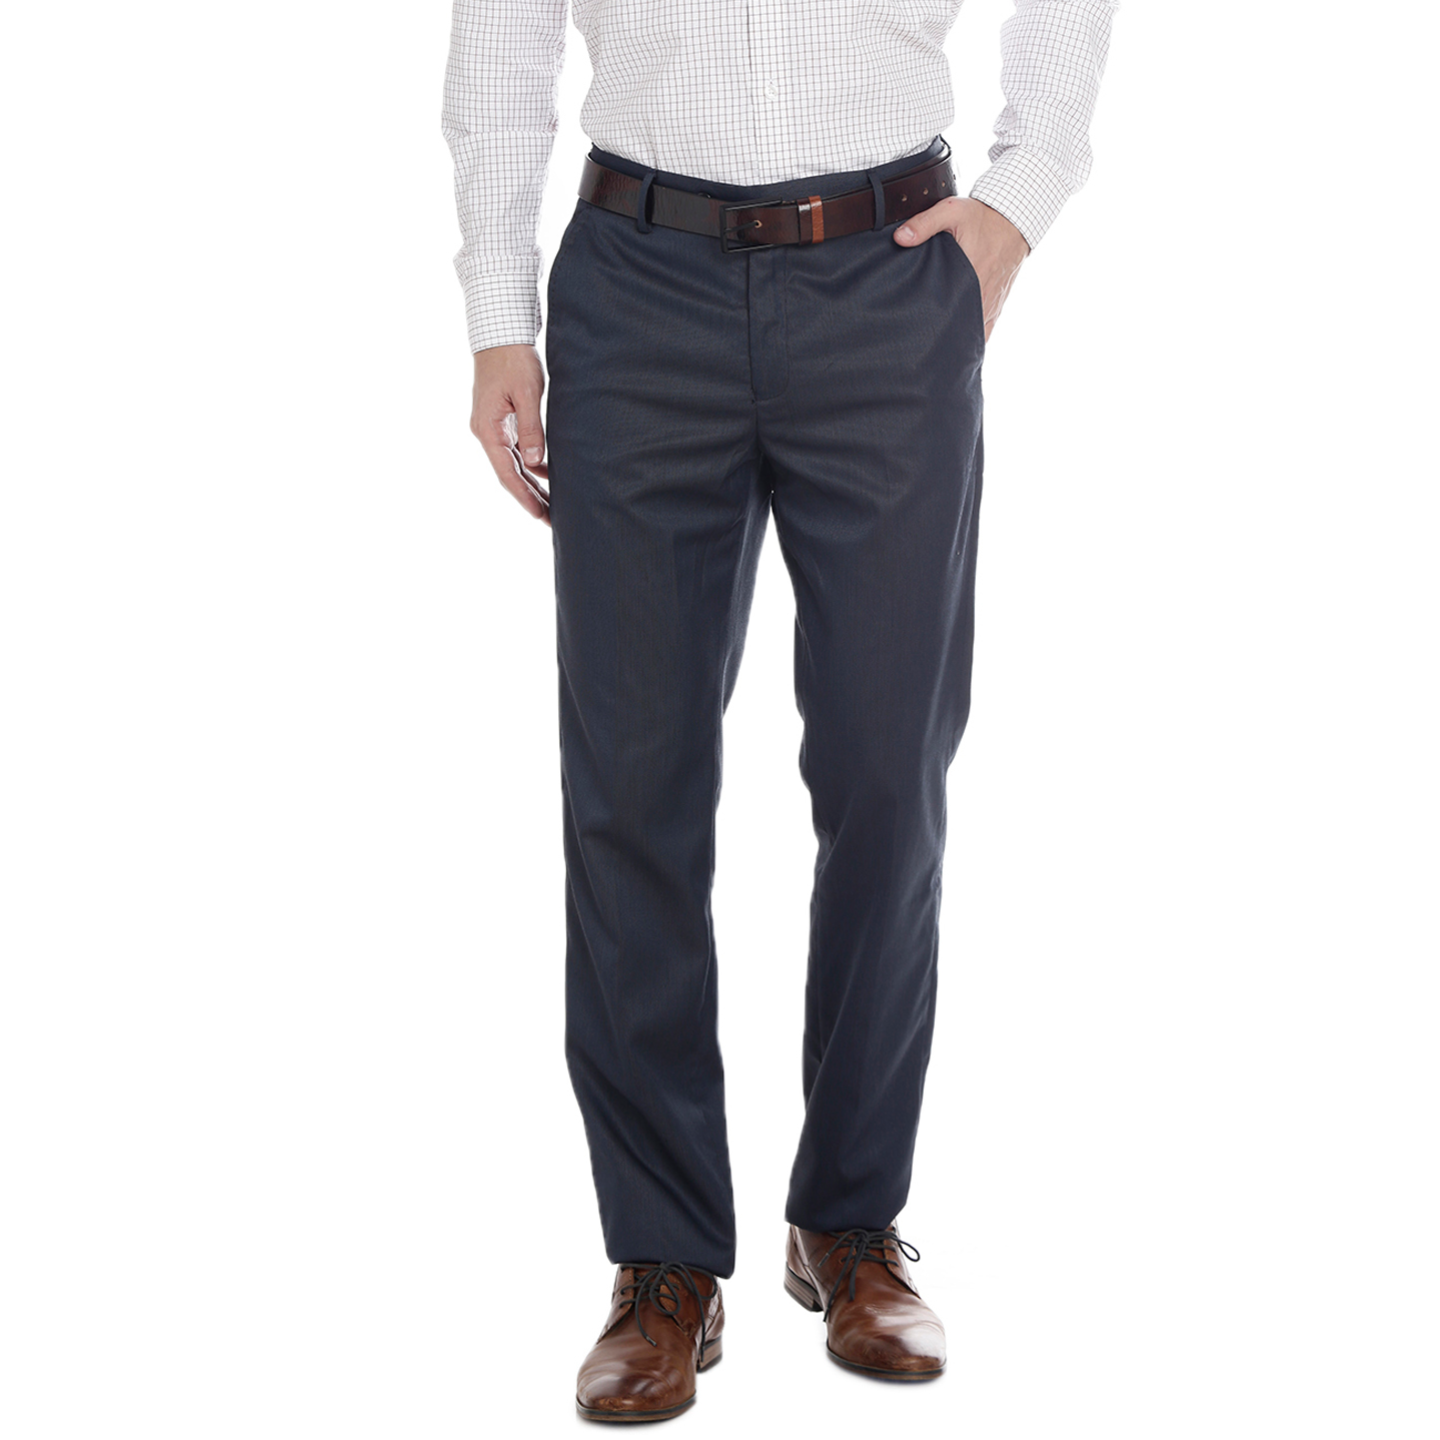 Double TWO Mens Slim Fit Black Formal Trouser